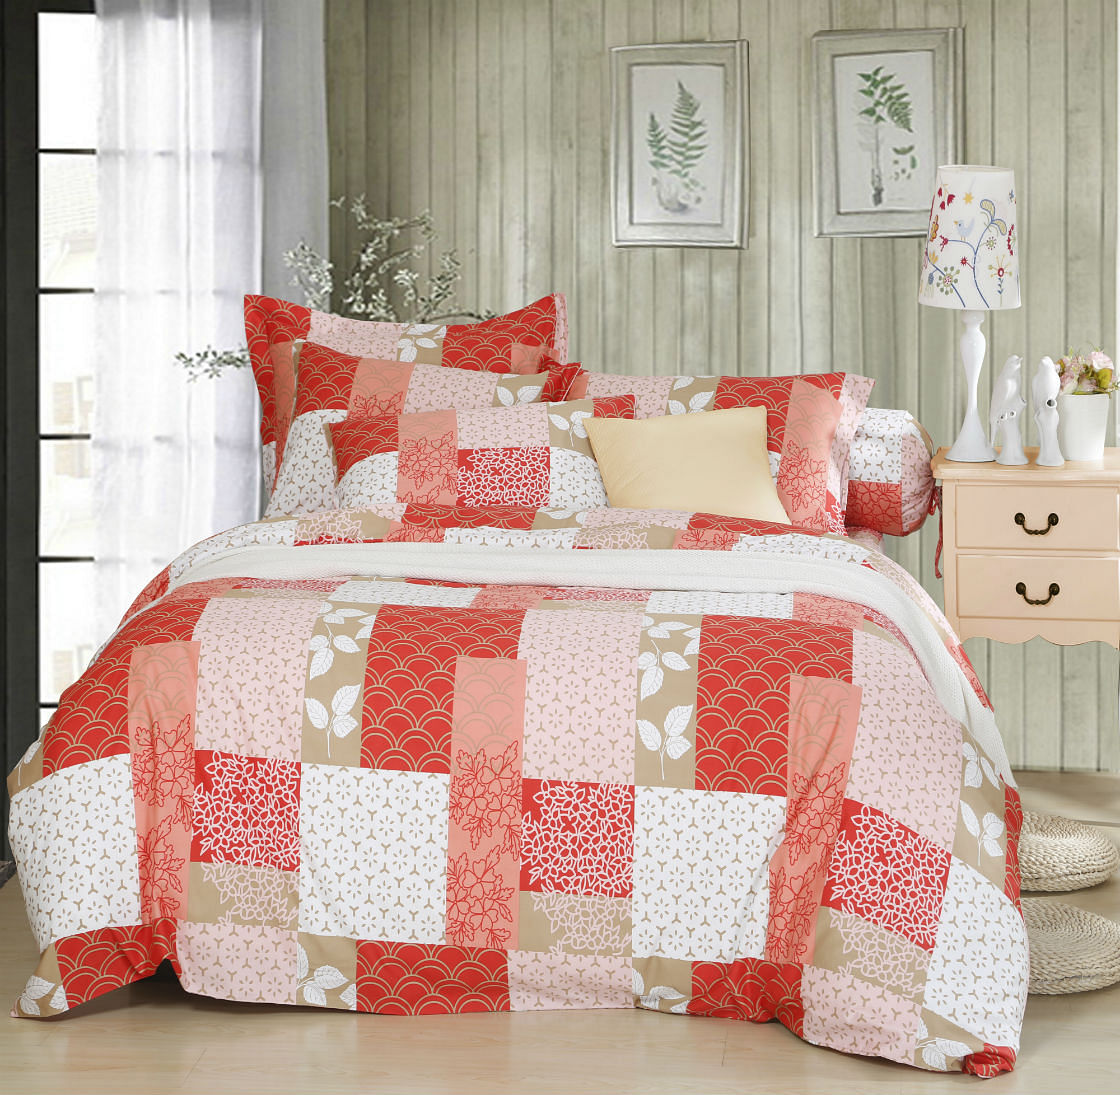 New bedlinen brand for trendy and affordable designs